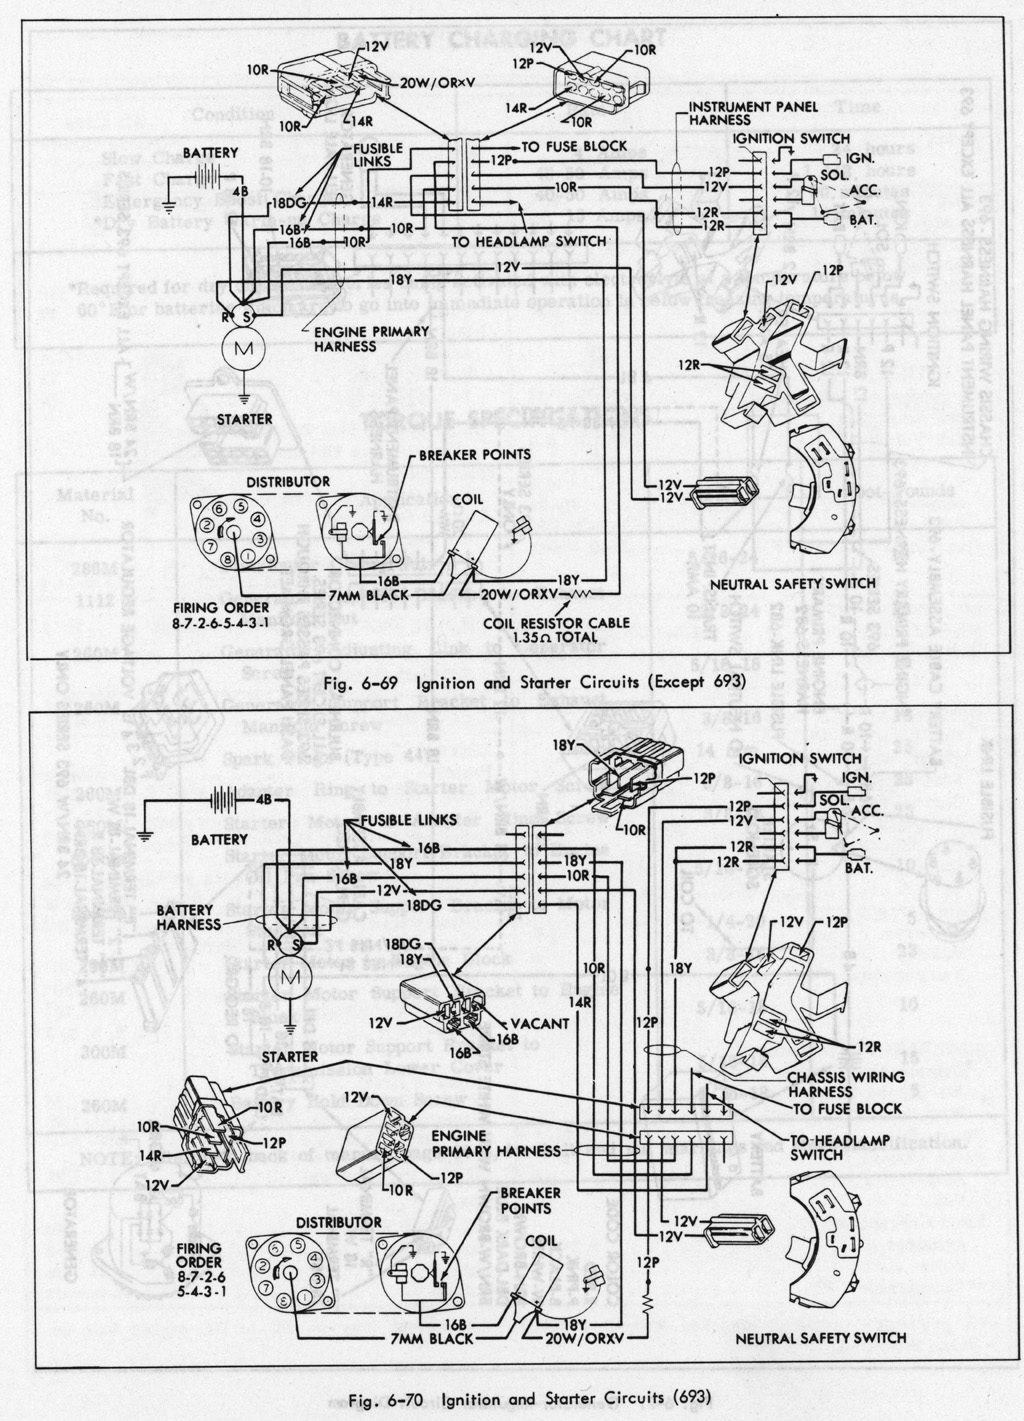 1973 dodge coronet vacuum diagram  dodge  auto wiring diagram